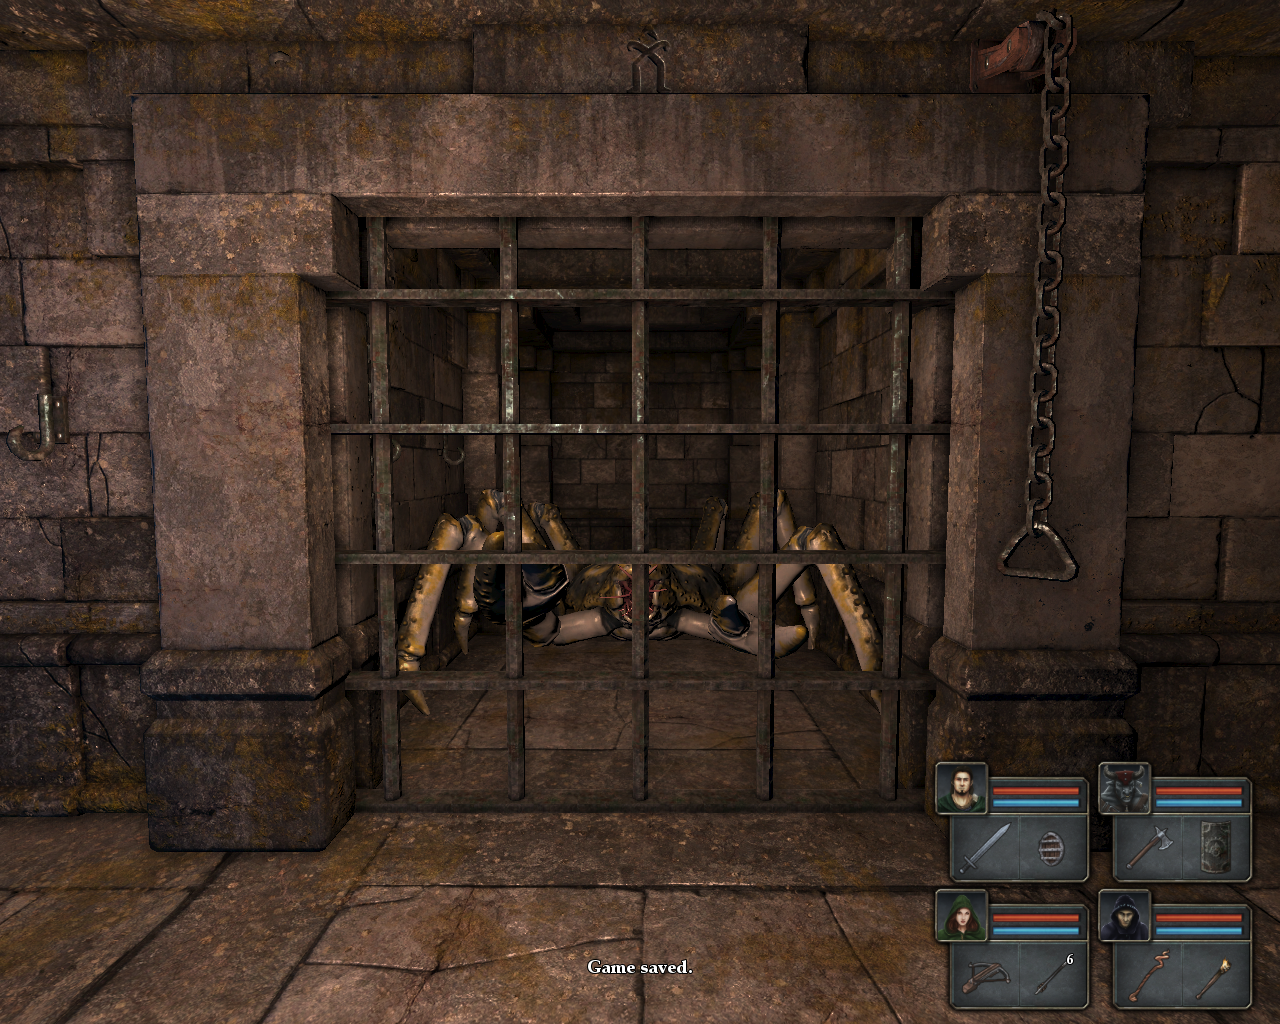 Legend of Grimrock Windows A giant crab. Now stay trapped there!